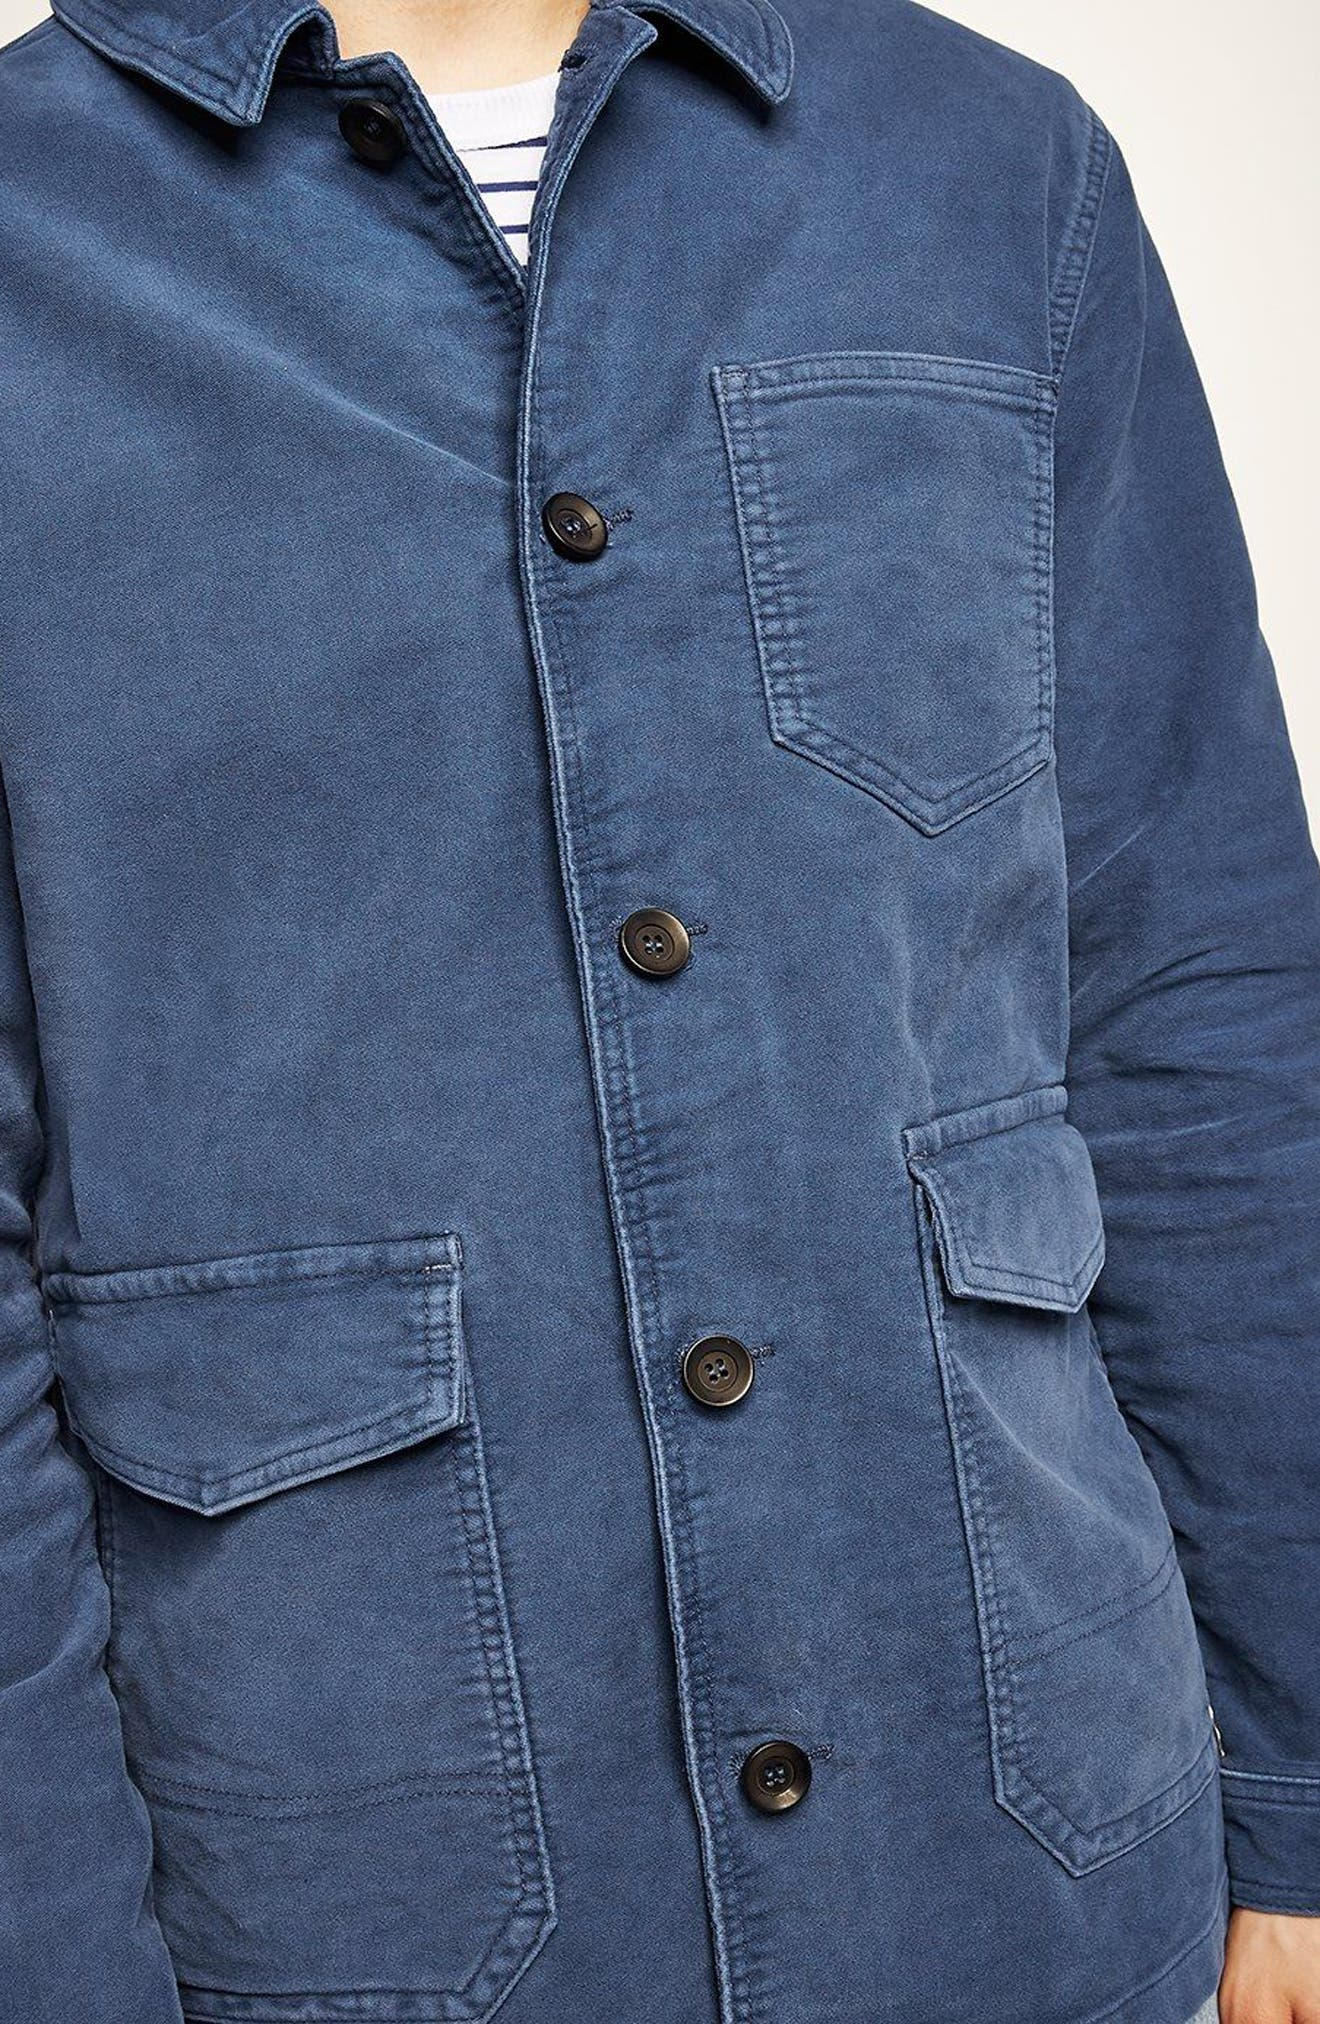 Classic Fit Work Jacket,                             Alternate thumbnail 3, color,                             Blue